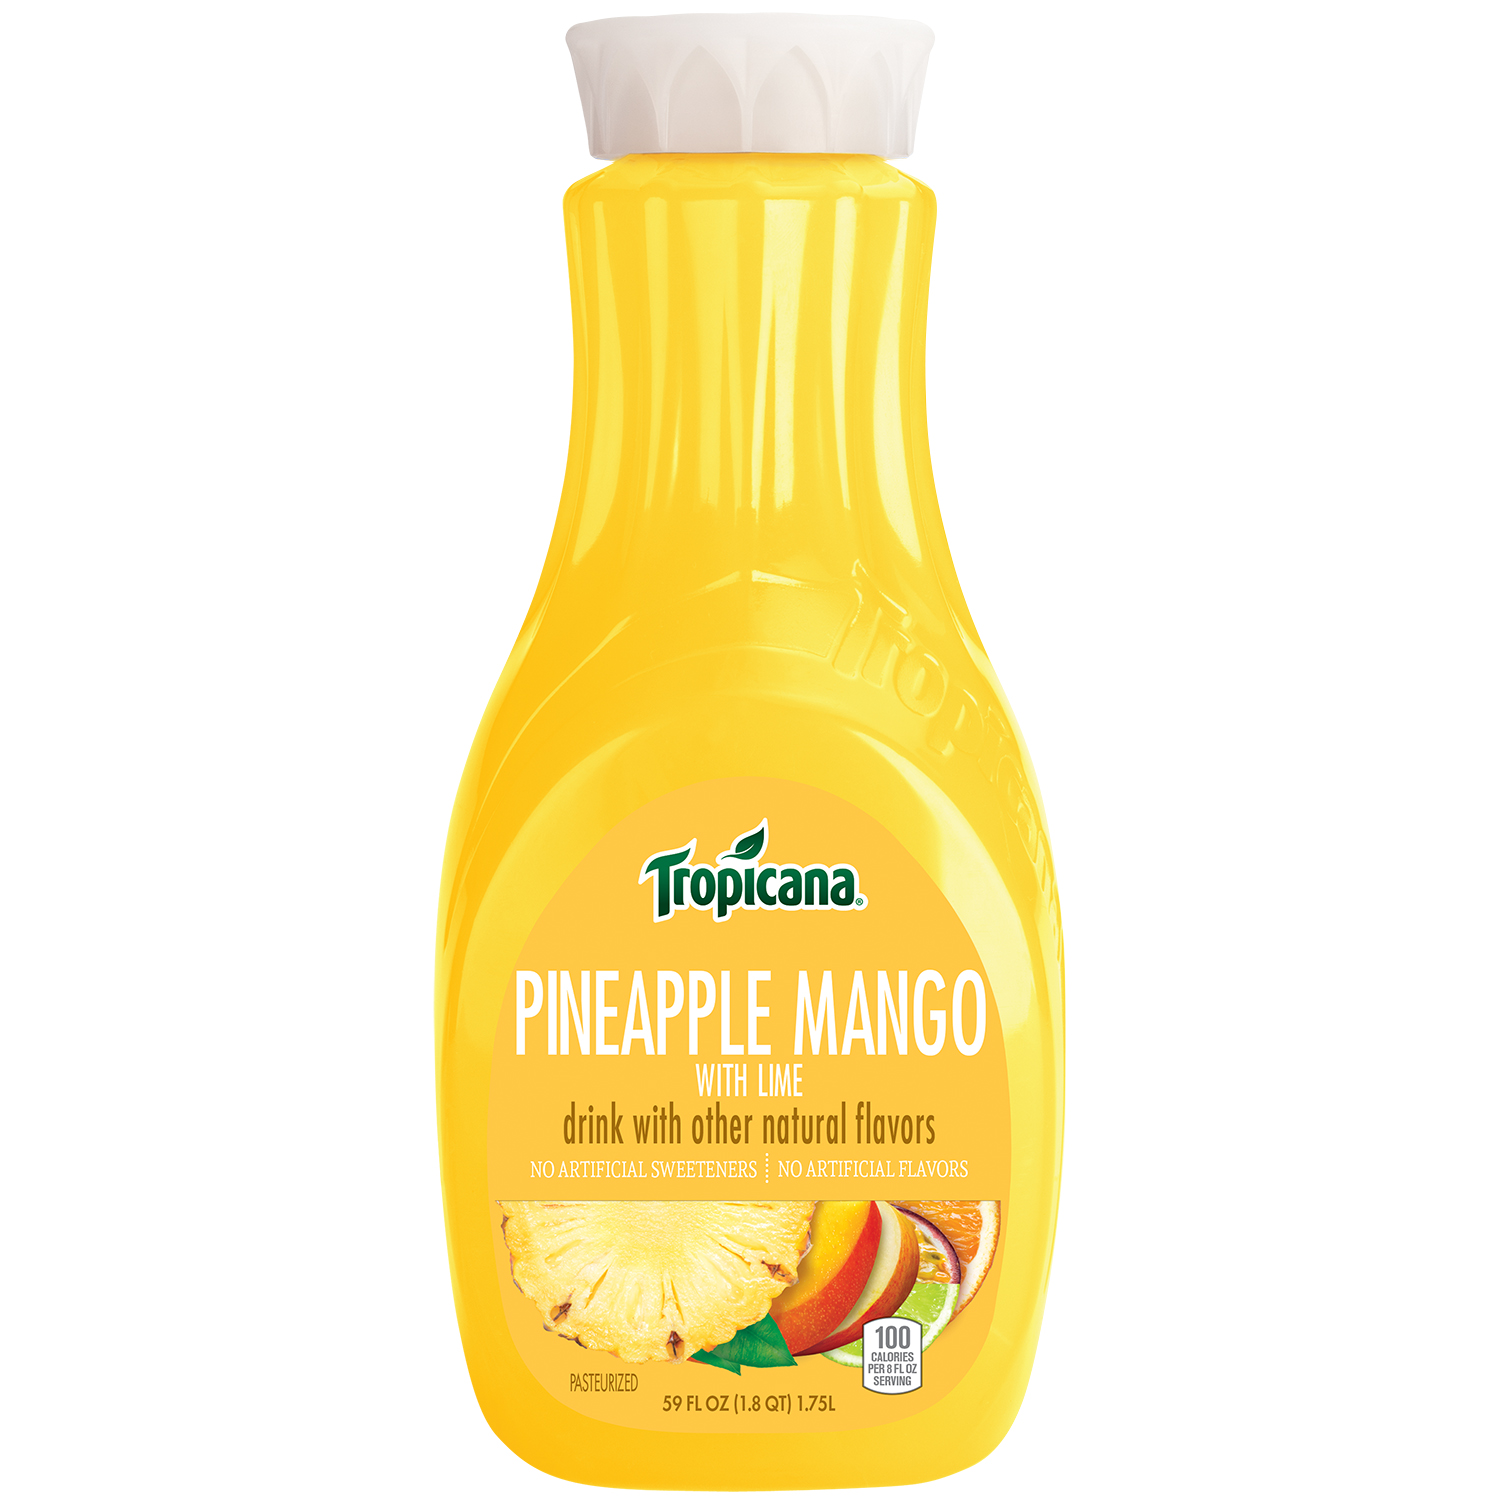 Tropicana Pineapple Mango with Lime Juice 59 fl. oz. Bottle ...